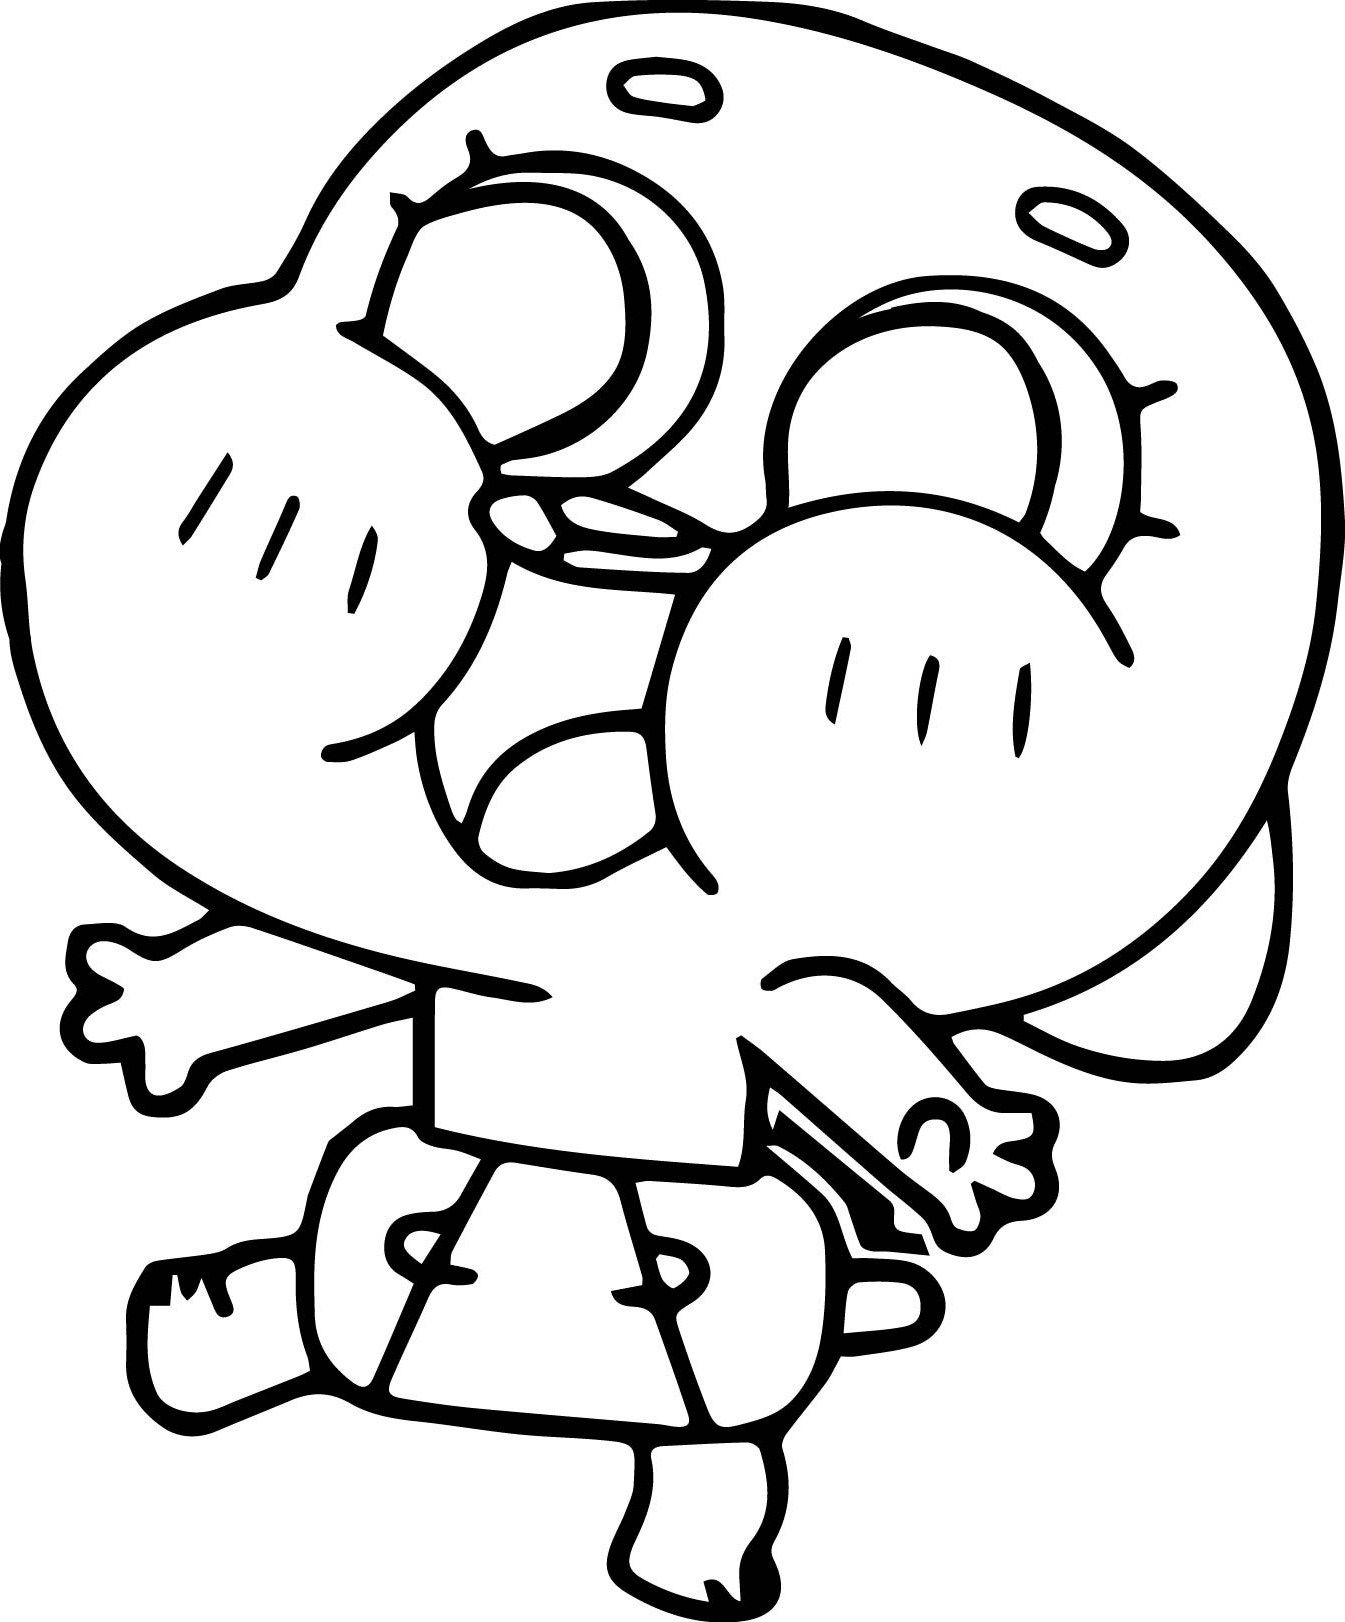 520 Top Gumball Coloring Pages Pictures